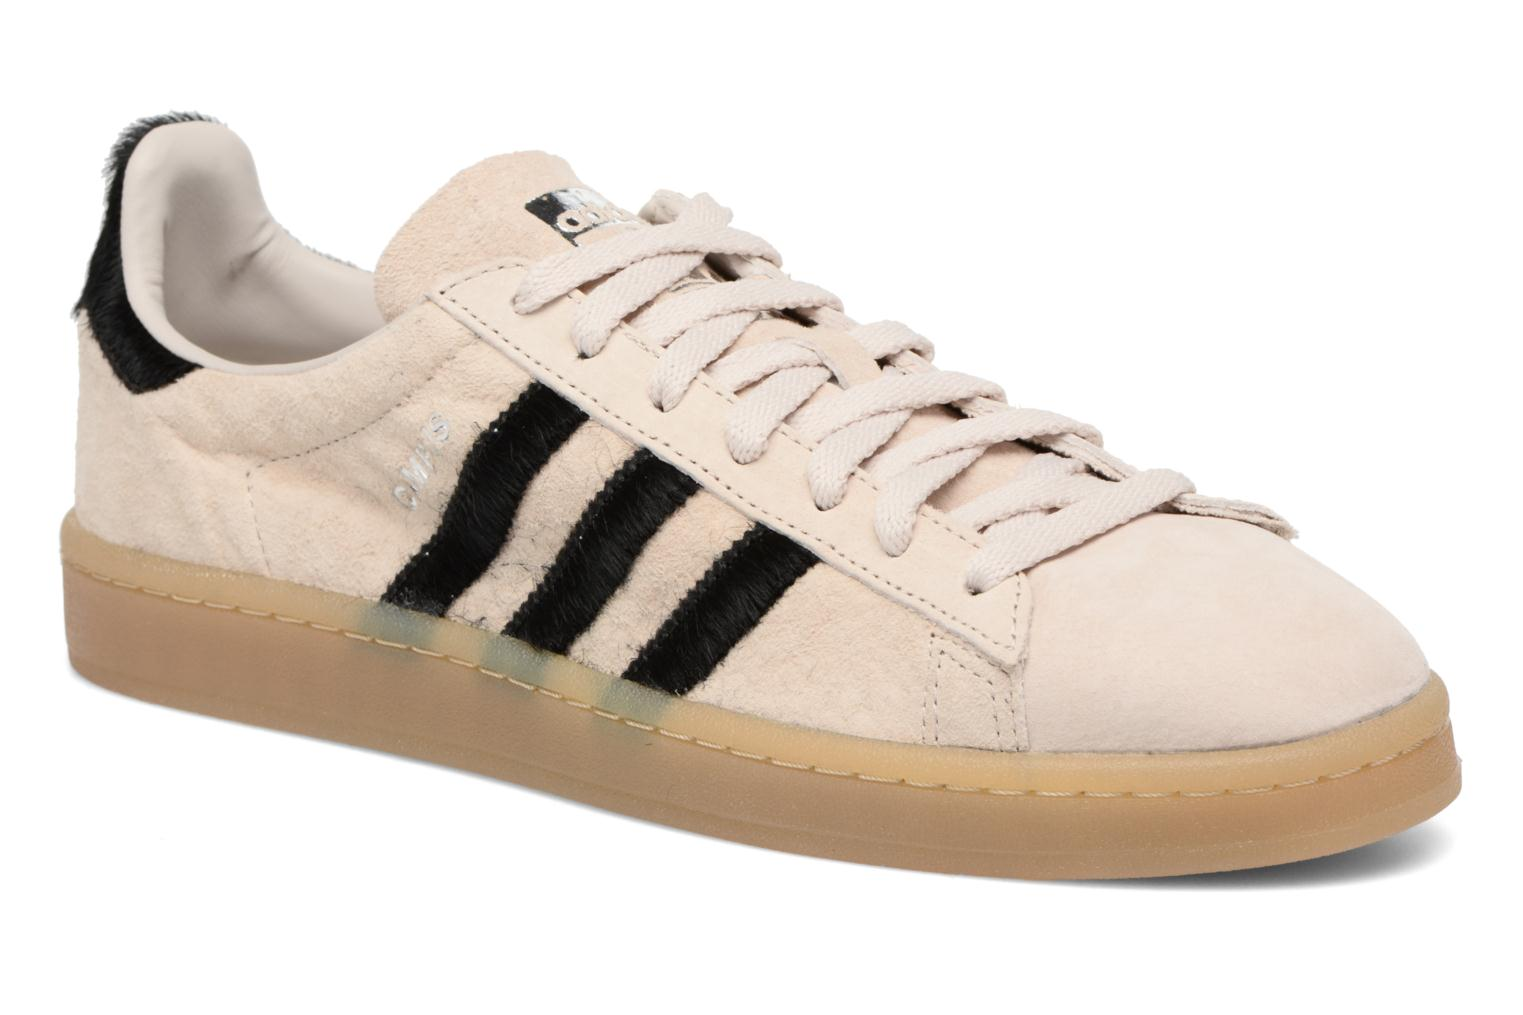 cb6f65dbe281ef Marques Chaussure homme Adidas Originals homme Campus Marcla/Noiess/Rubmys